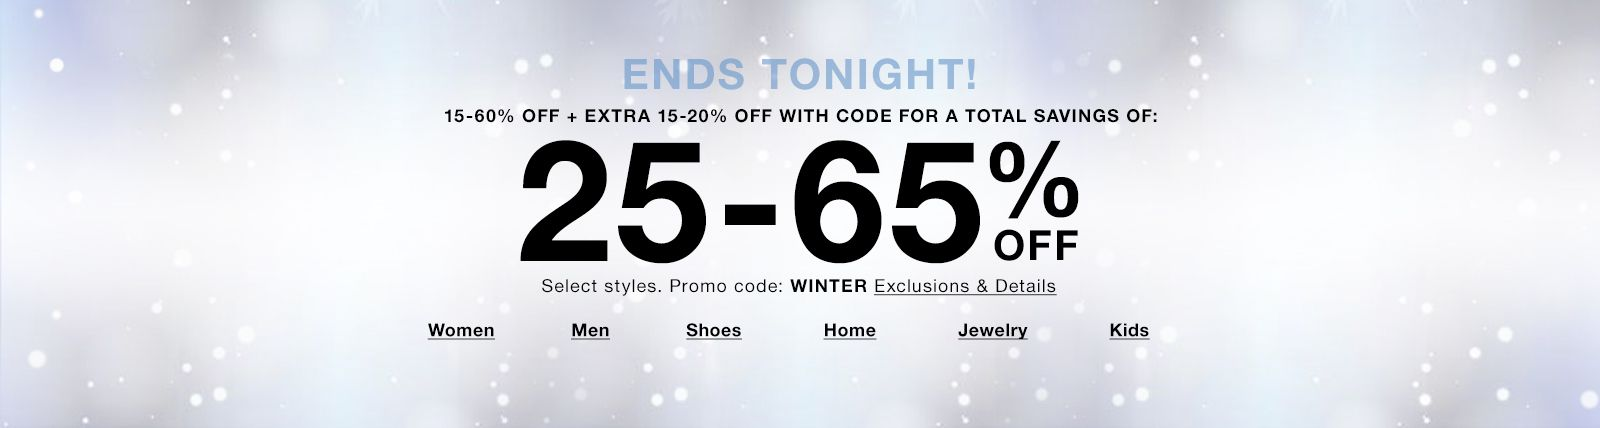 Ends Tonight! 15-60% Off + Extra 15-20% Off With Code for a Total Savings of, 25-65% Off, Promo code: WINTER, Exclusions and Details, Women, Men, Shoes, Home, Jewelry, Kids